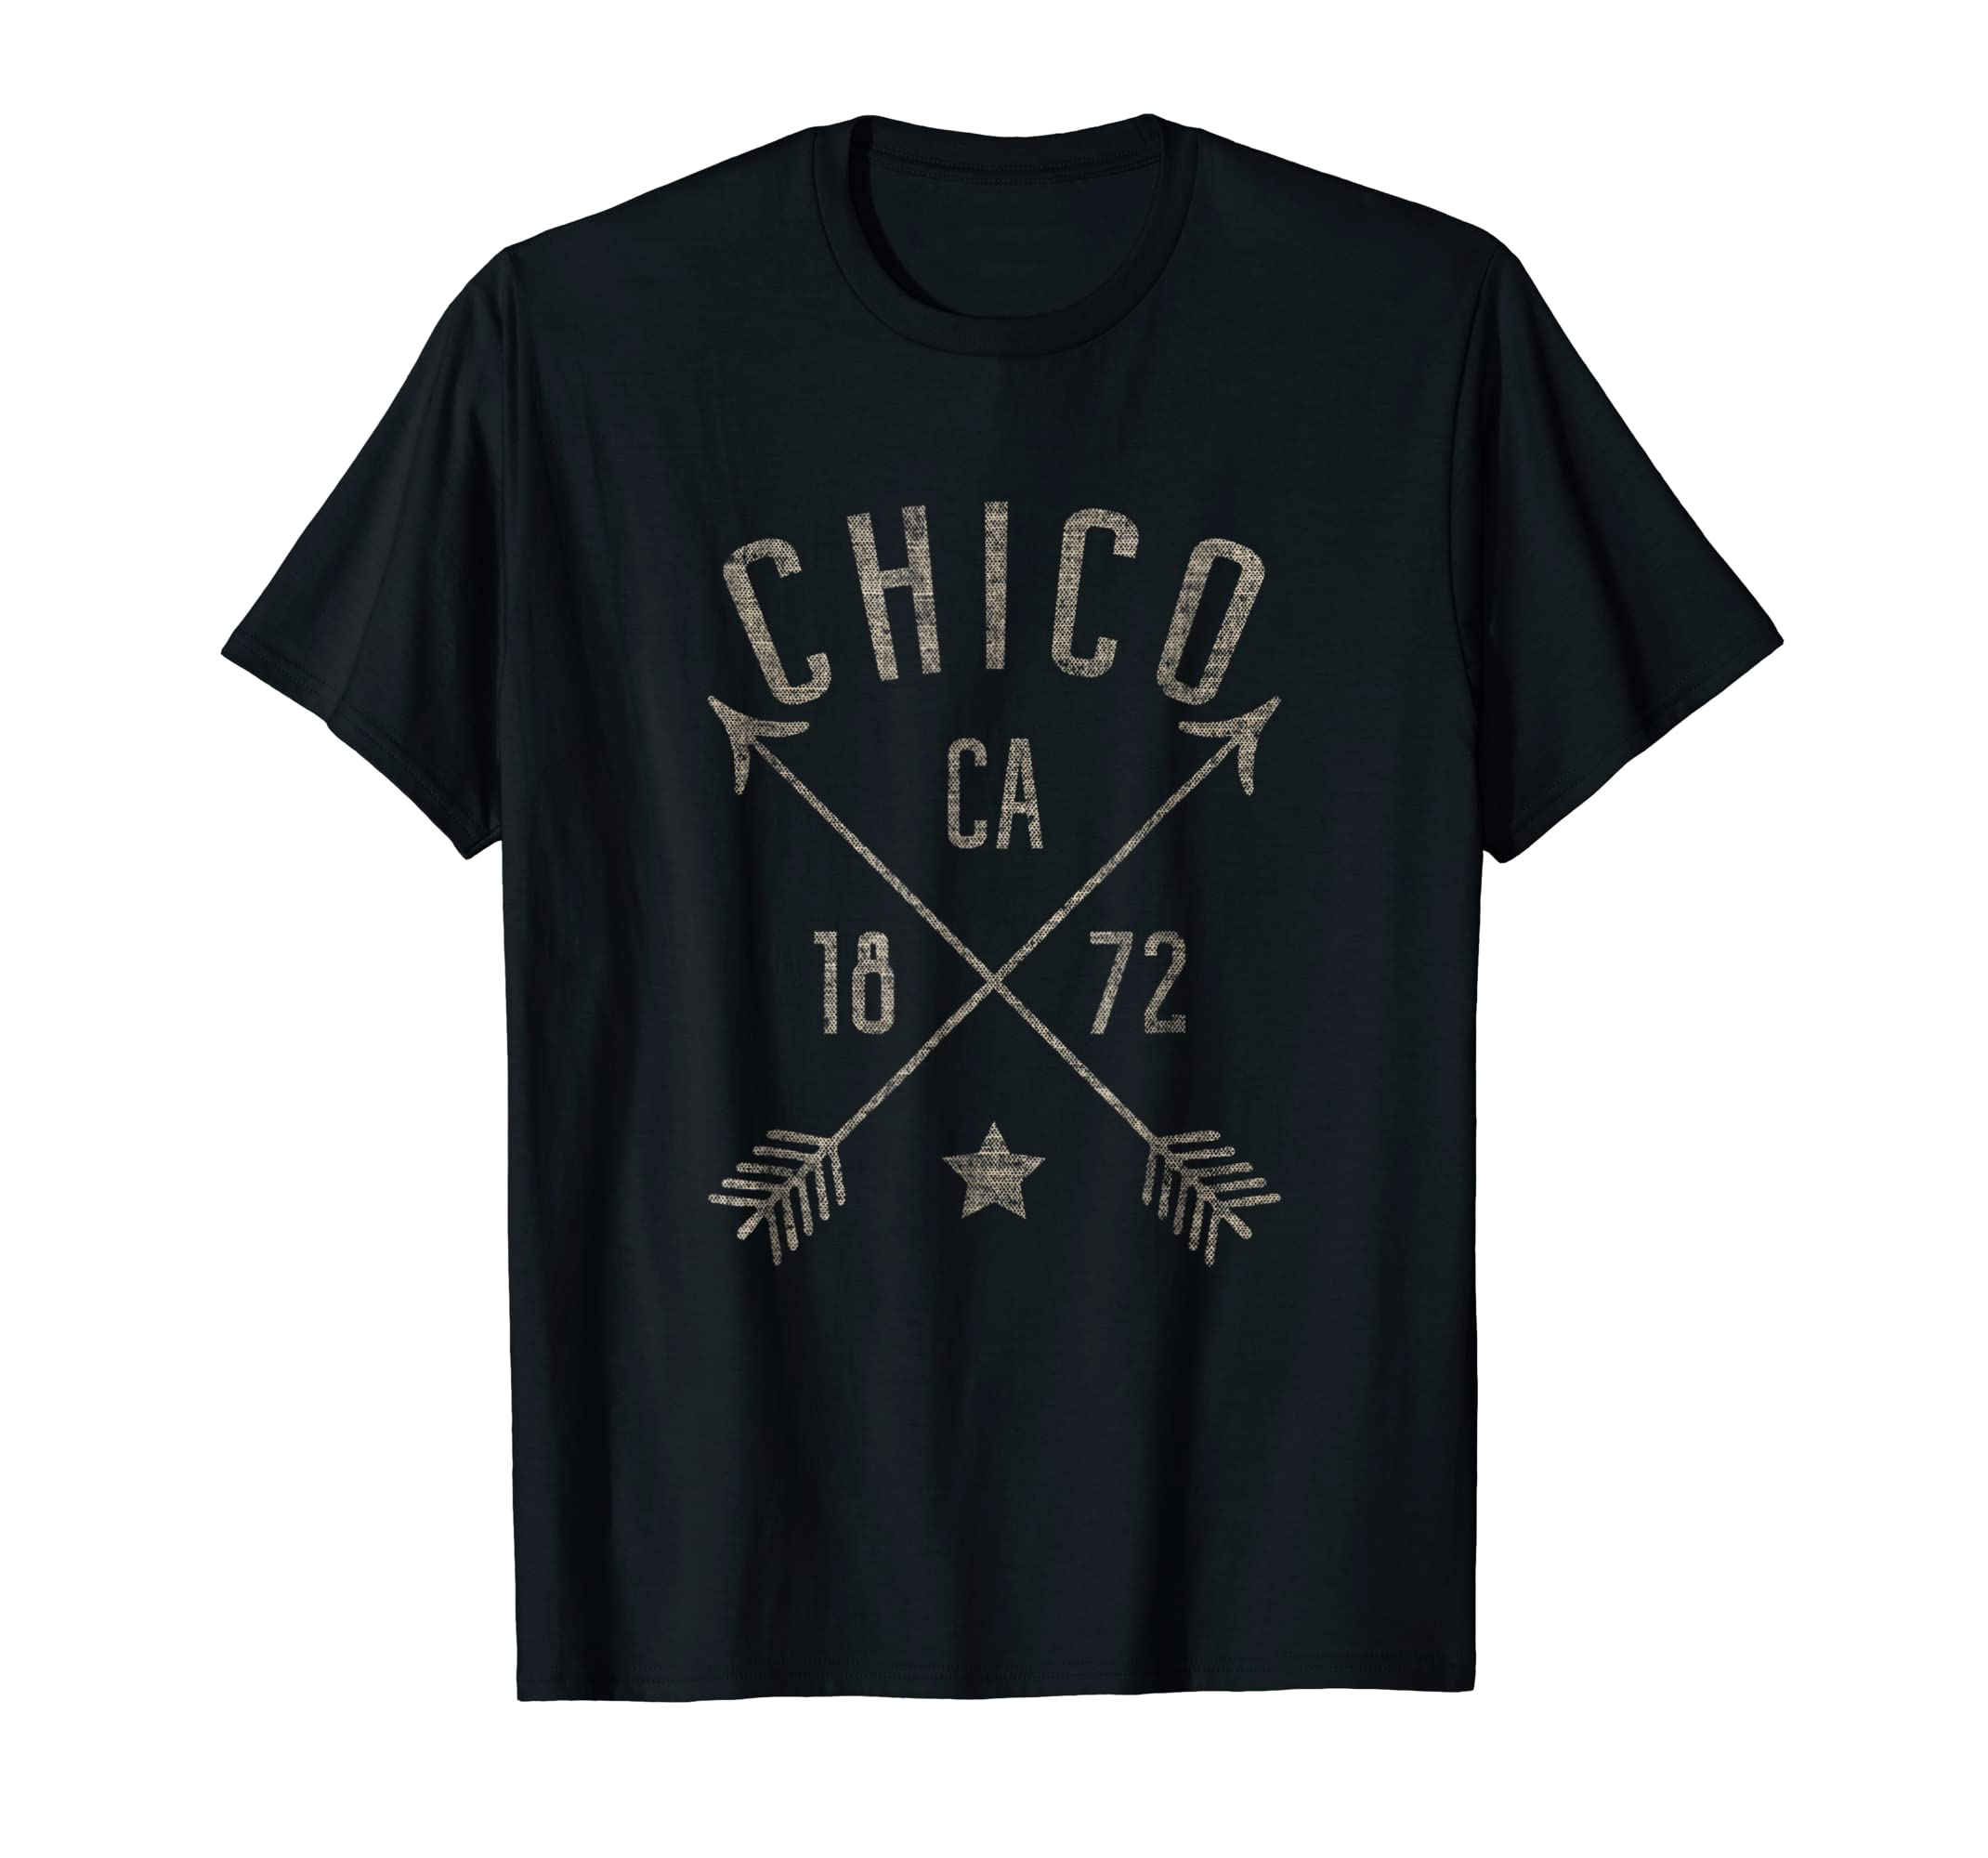 Amazon Chico Ca T Shirt Distressed Boho Style Home City Clothing